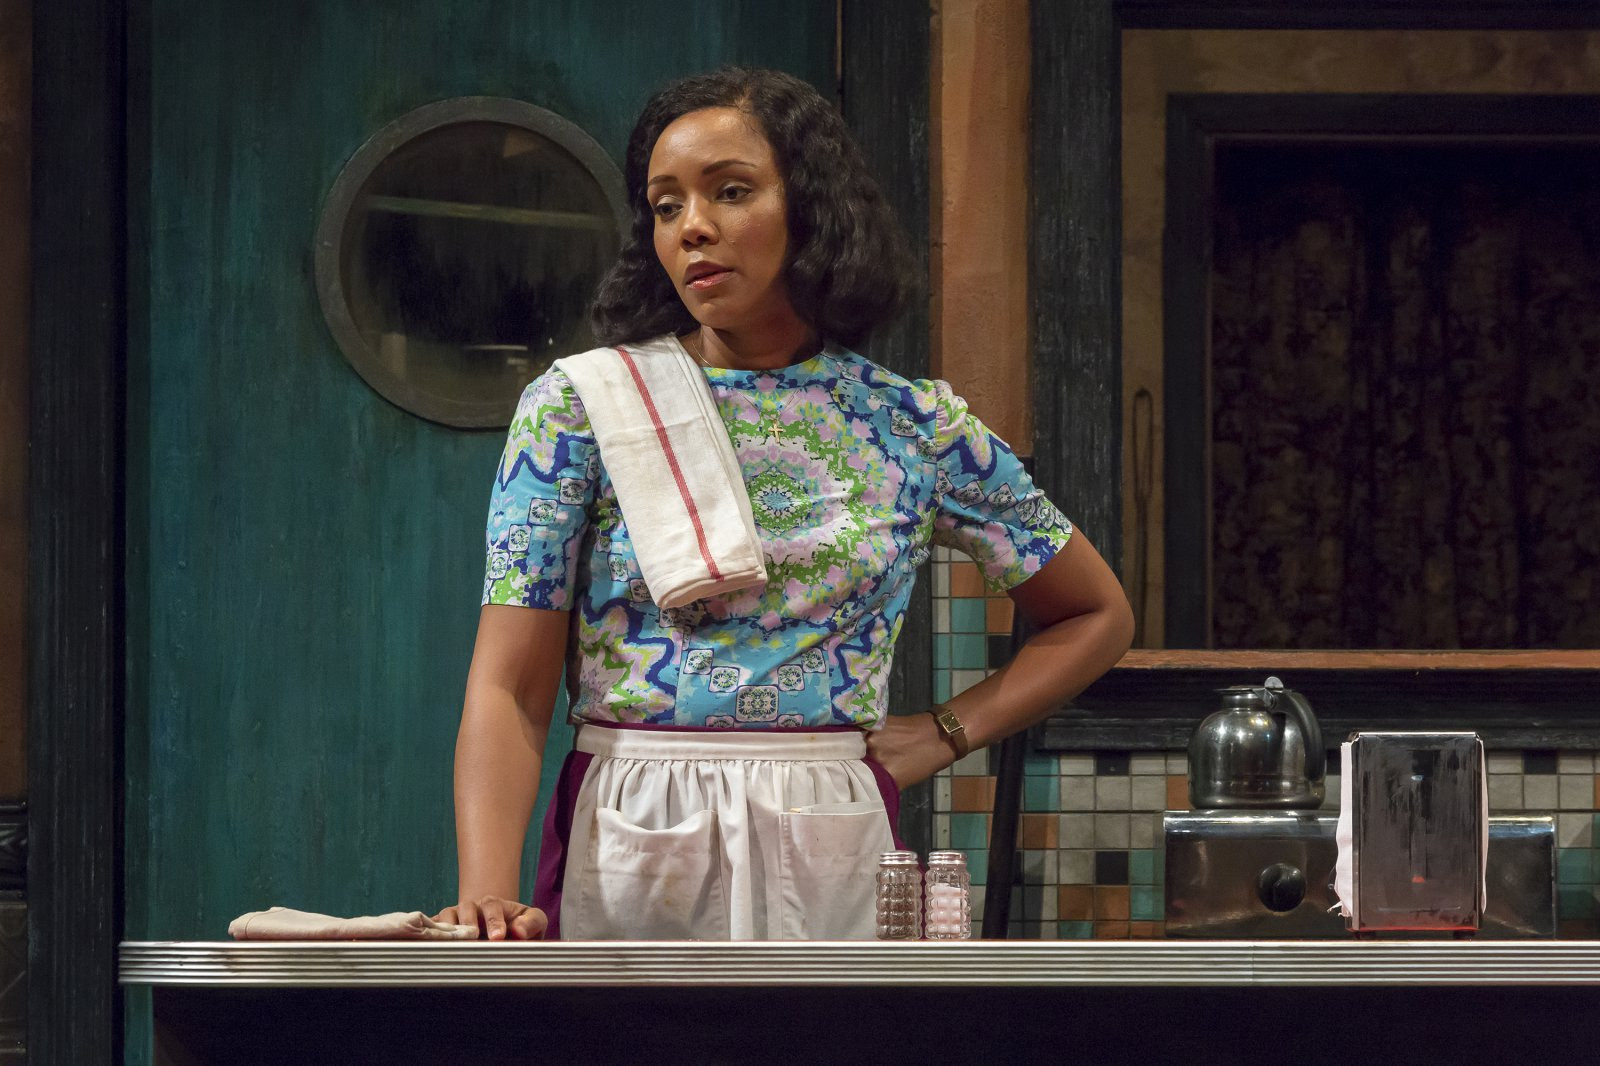 Risa (Malkia Stampley) in Milwaukee Repertory Theater's production of August Wilson's Two Trains Running April 16 – May 12, 2019